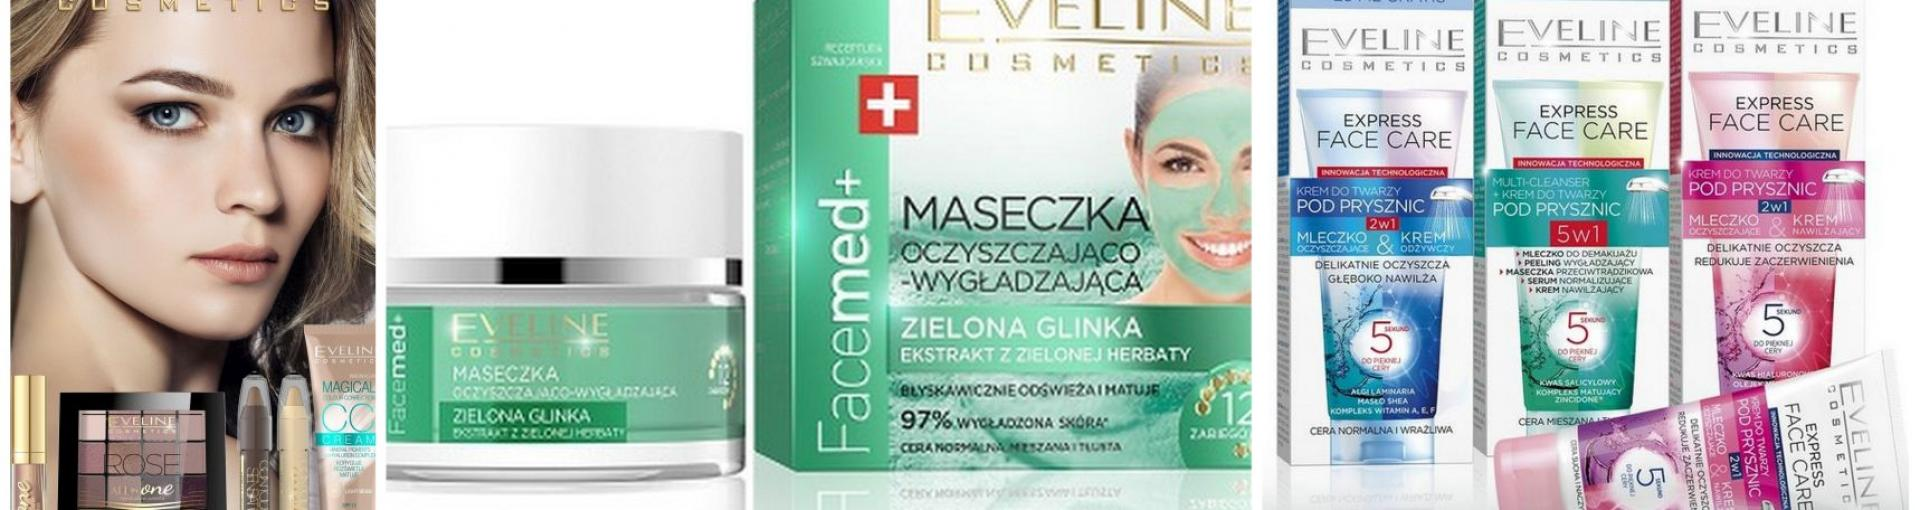 Eveline Cosmetics - Elektromechanik